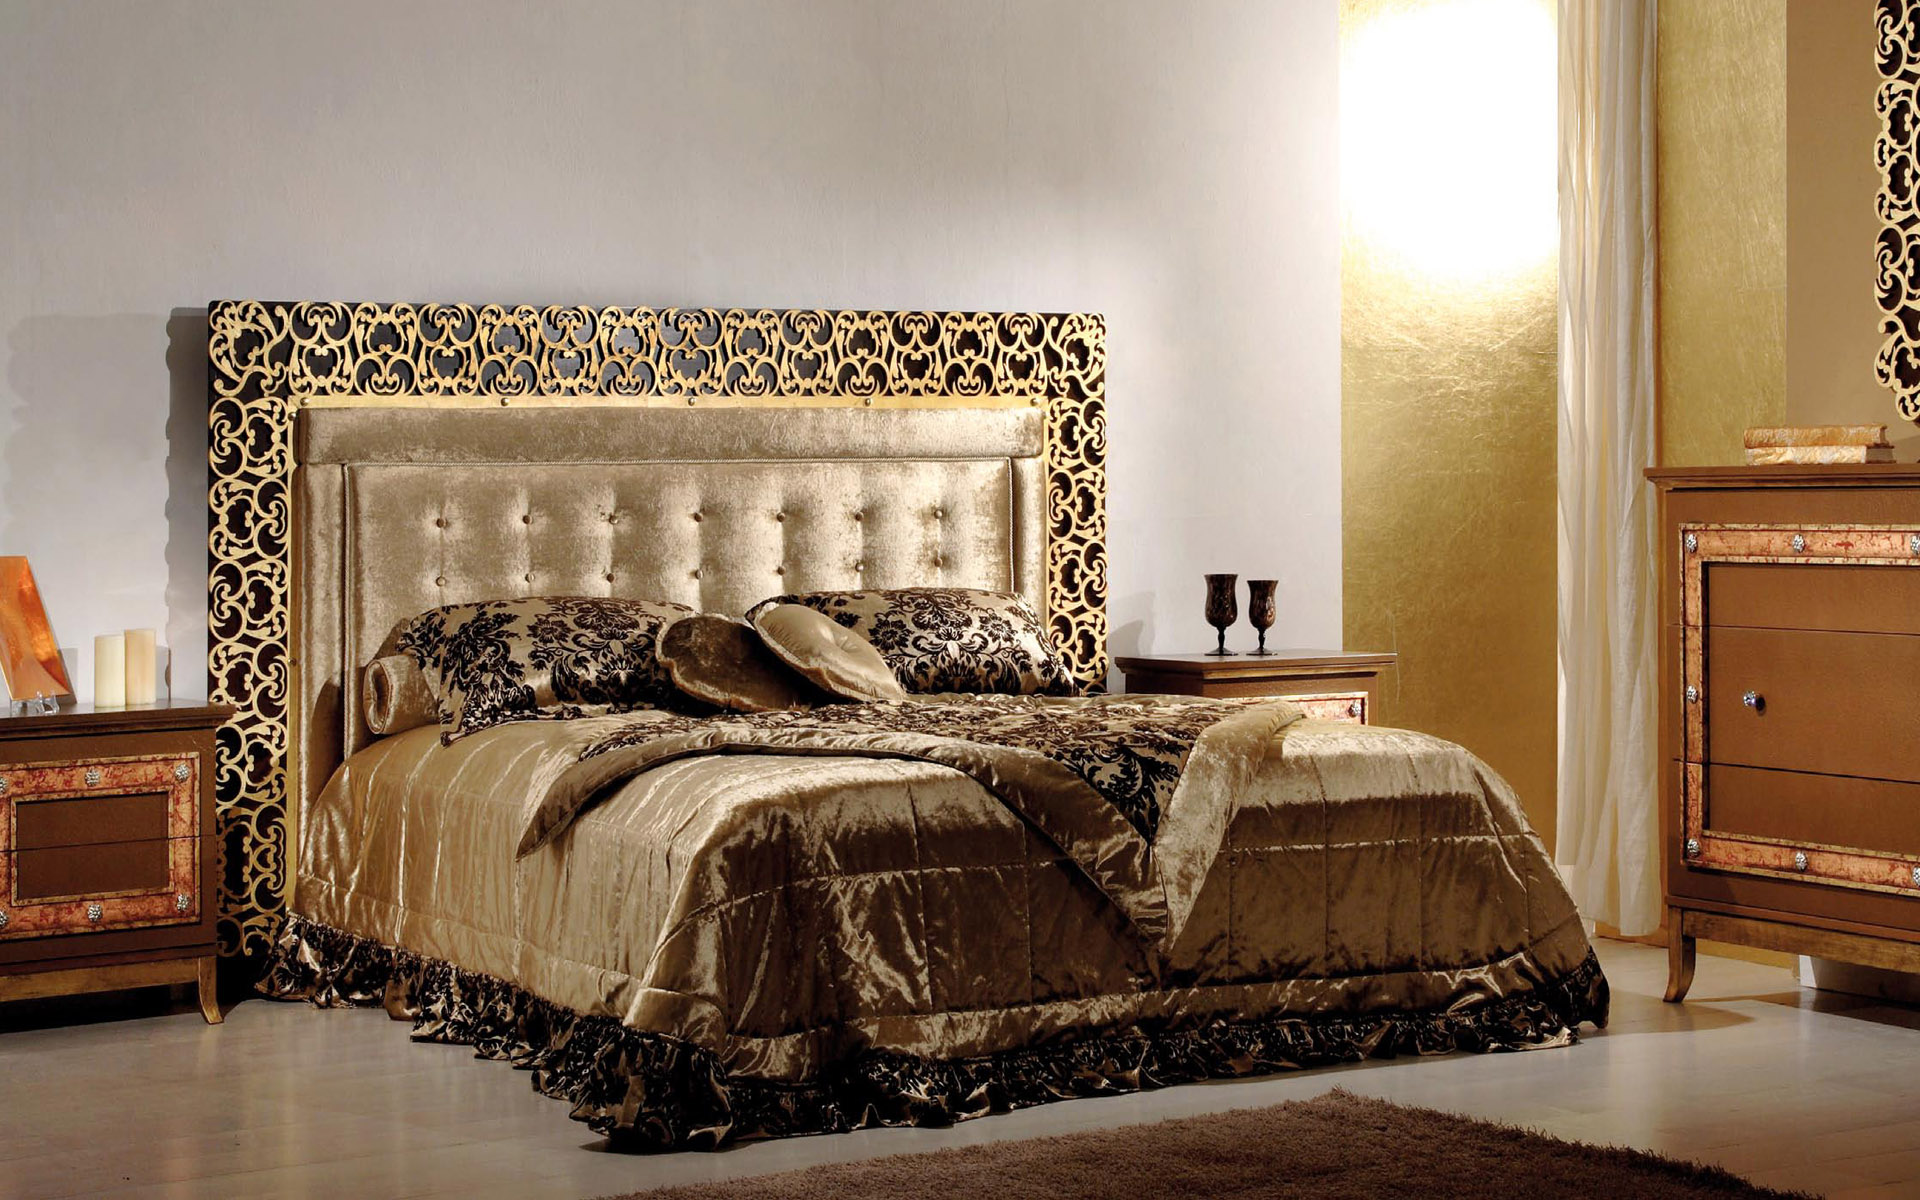 Hd Home Bed Pictures : HD Photo bedroom 20890 - Indoor Home - Still Life. Download HD Photo ...